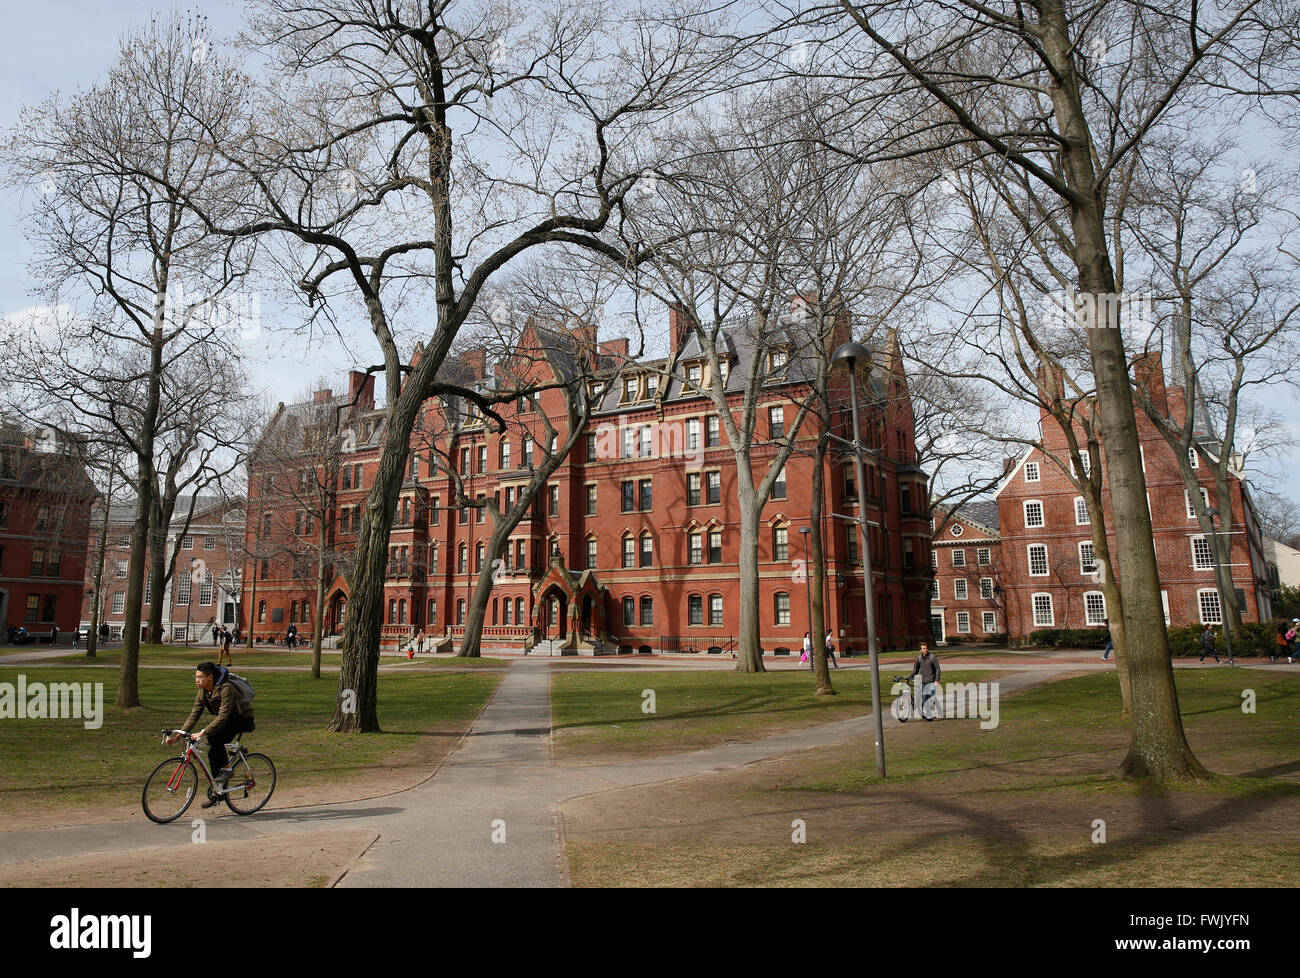 Harvard University, Cambridge, Massachusetts - Stock Image